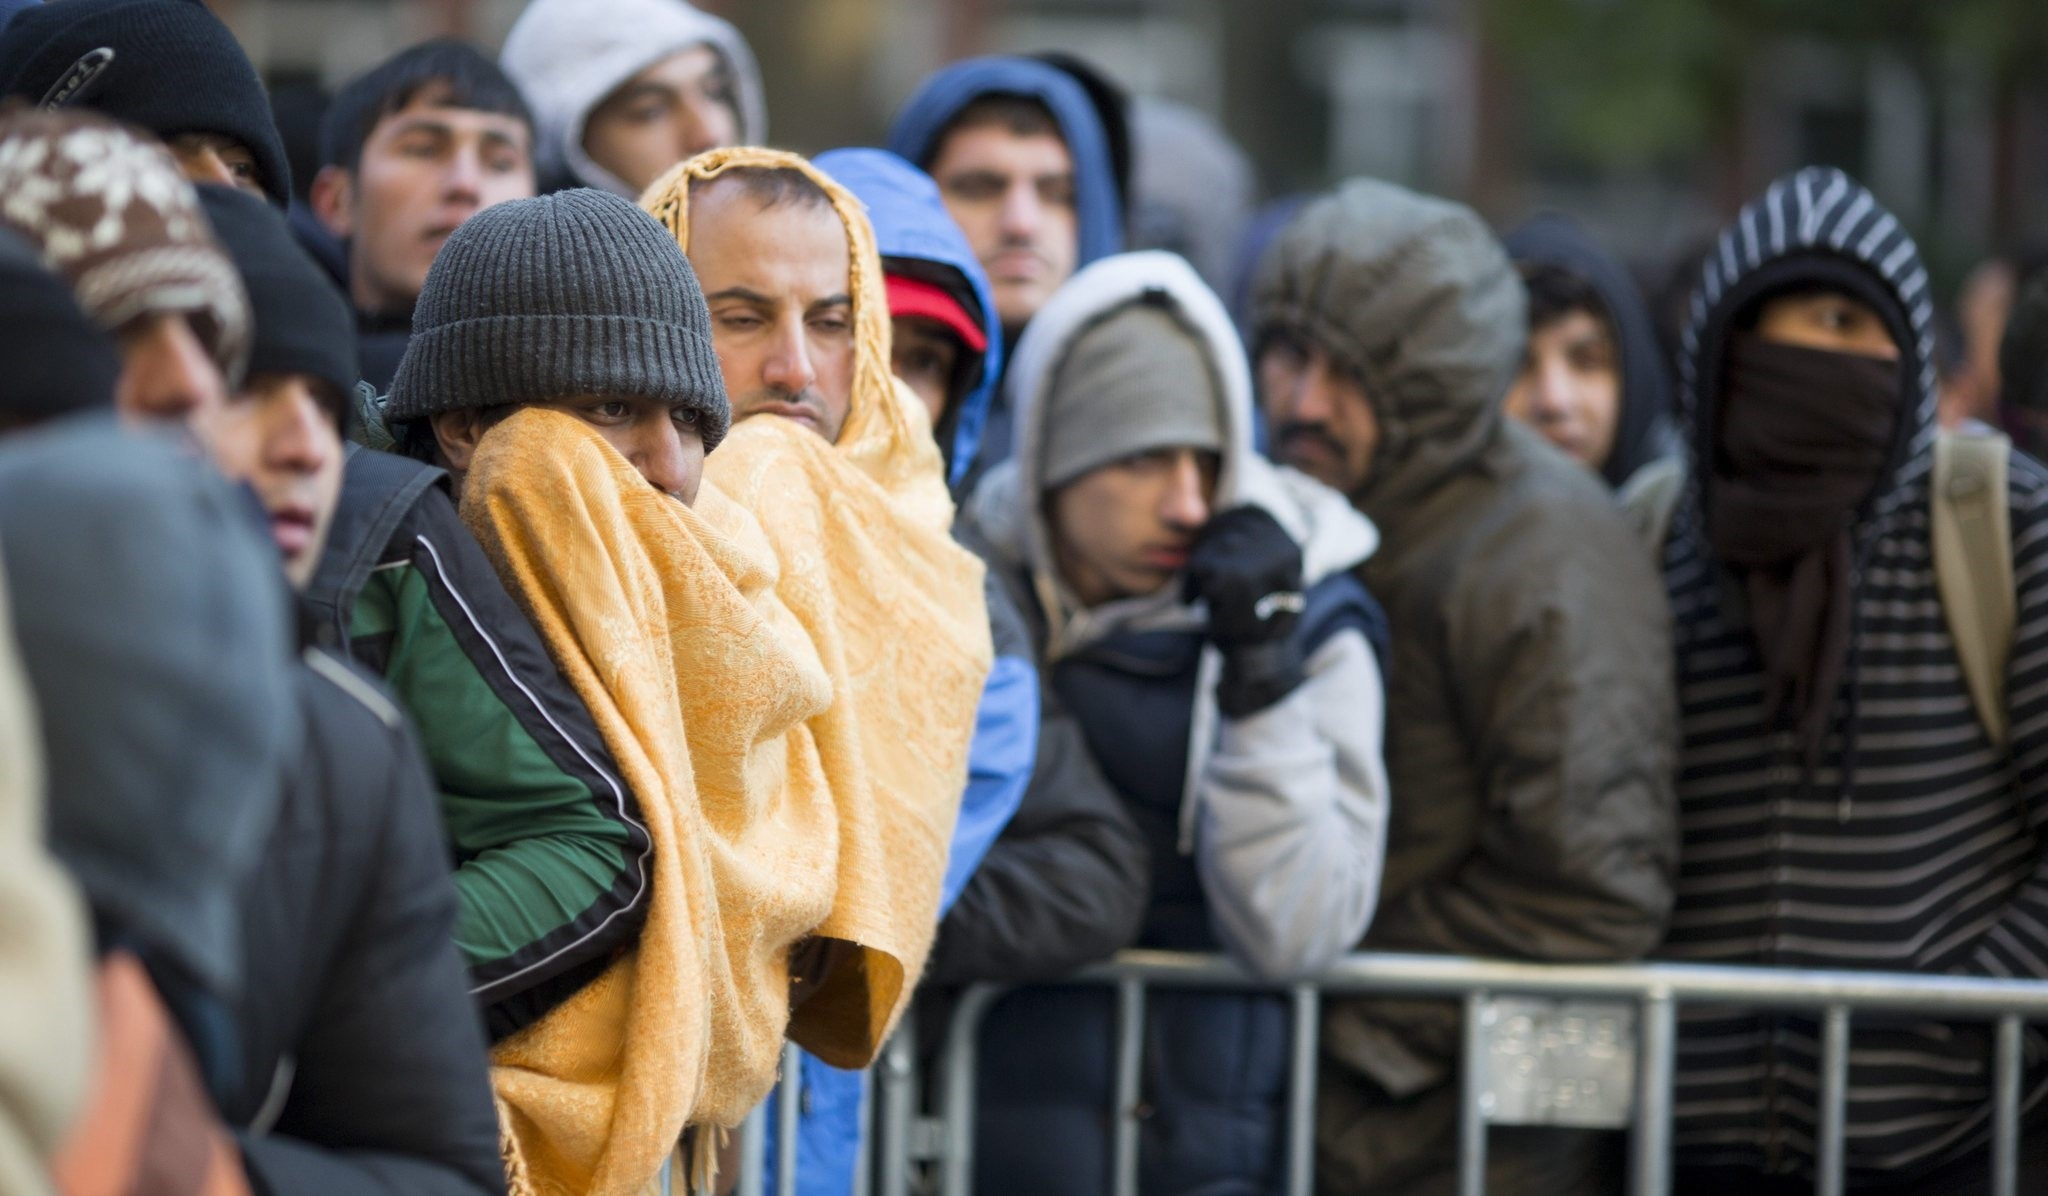 Refugees wait for registration and allocation of a sleeping place on the premises of the State Office of Health and Welfare in Berlin, Germany, early 12 October 2015. (EPA Photo)